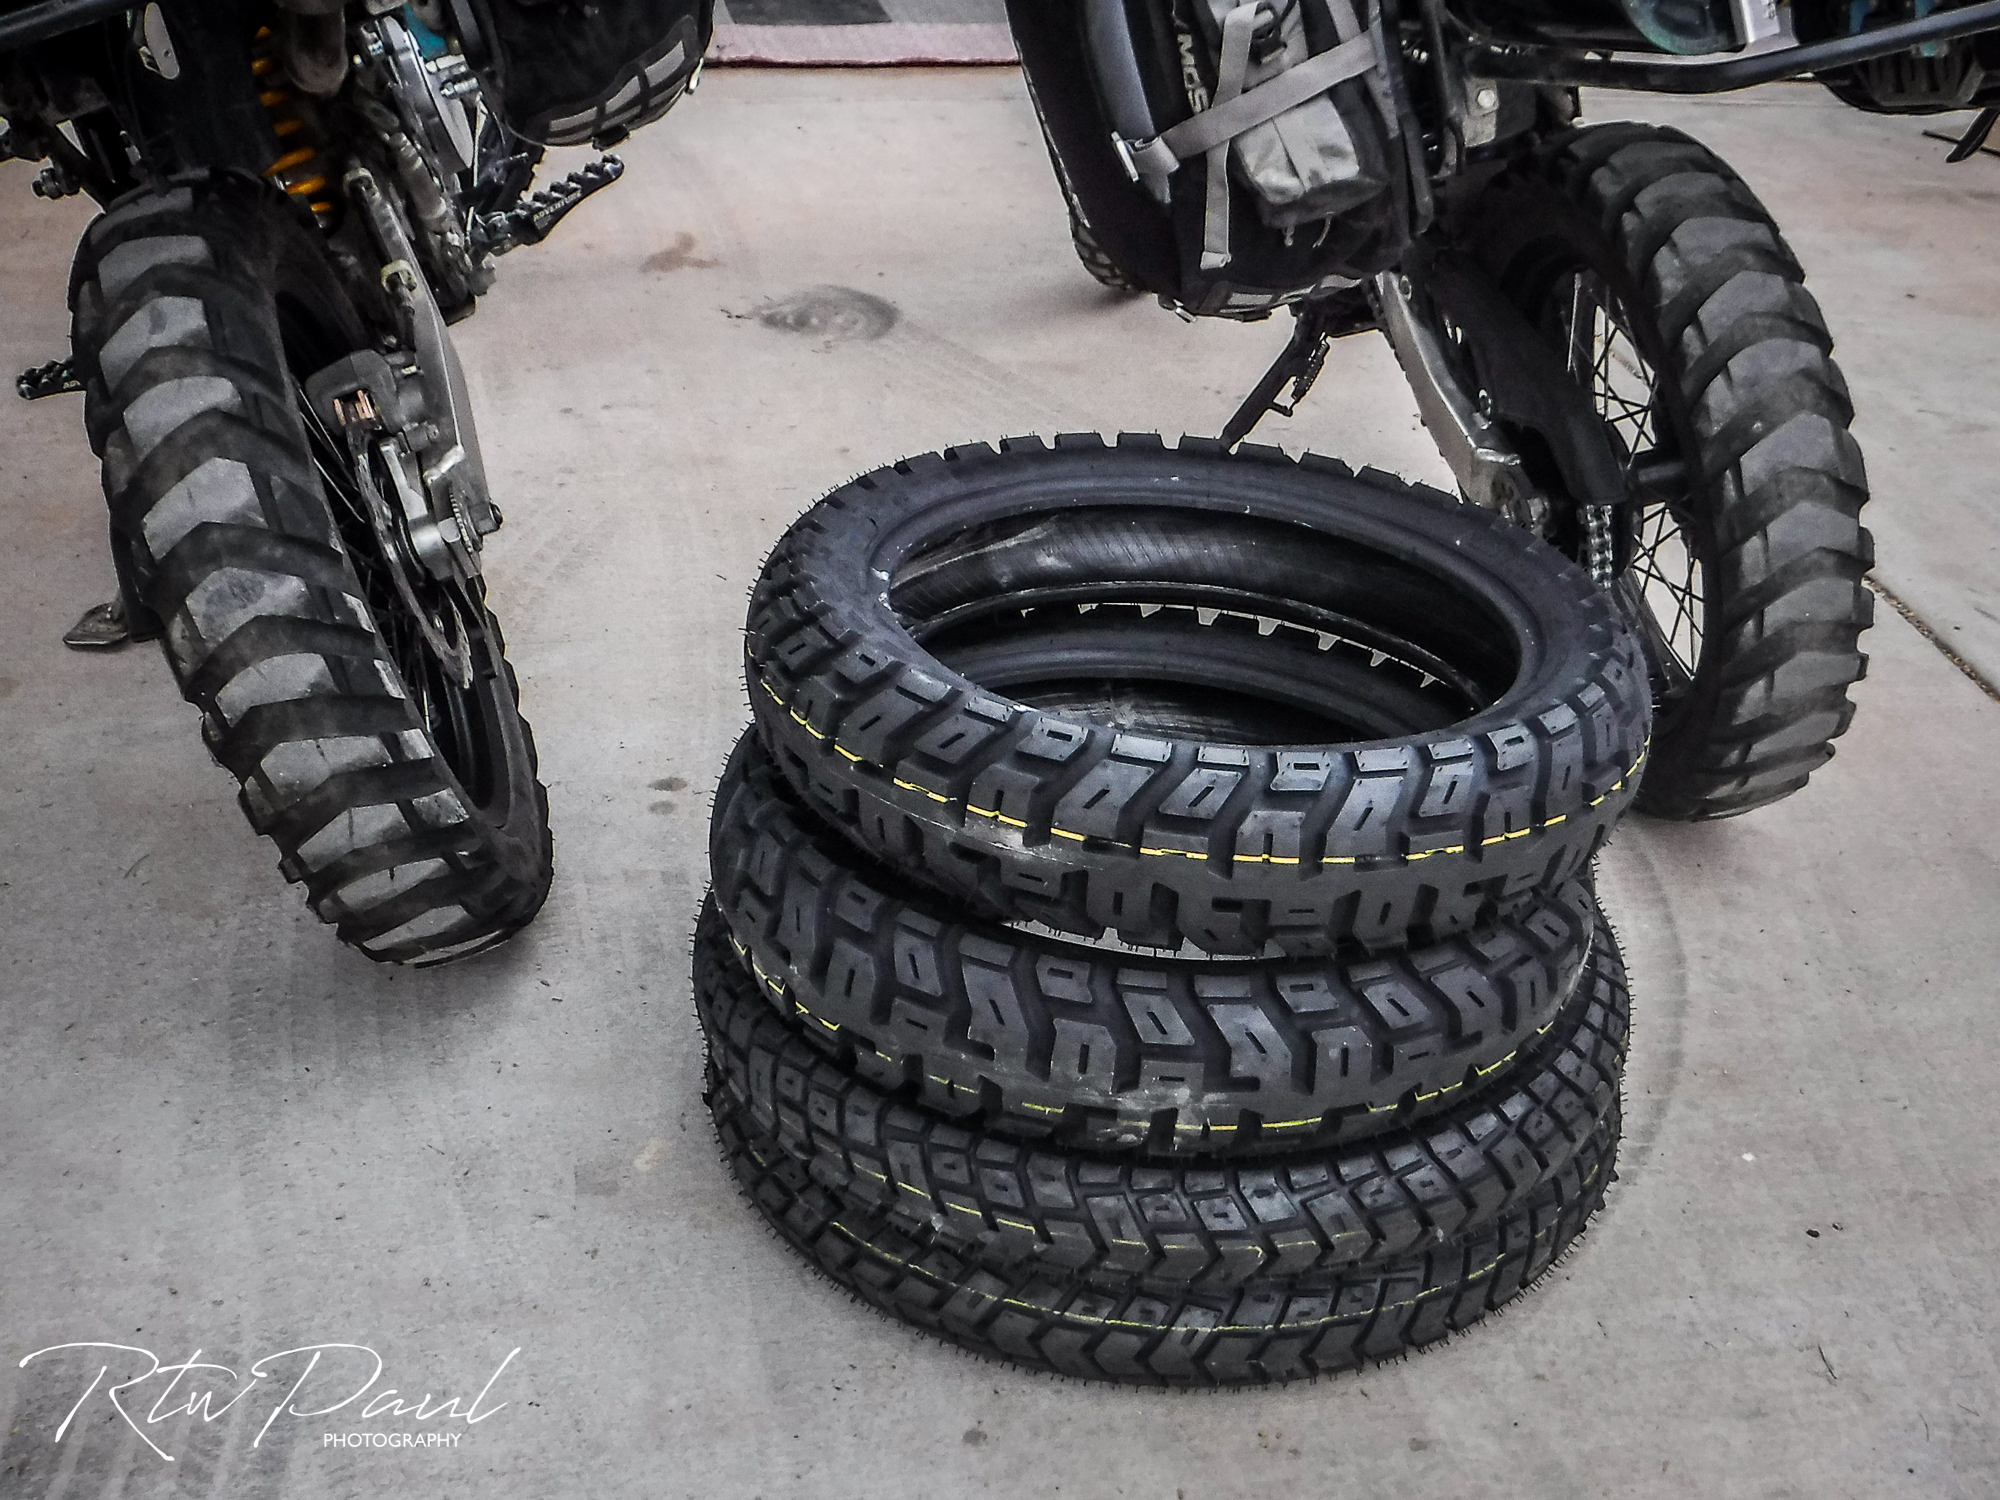 Adventure Tires – 'My Personal Experiences' – By RtwPaul